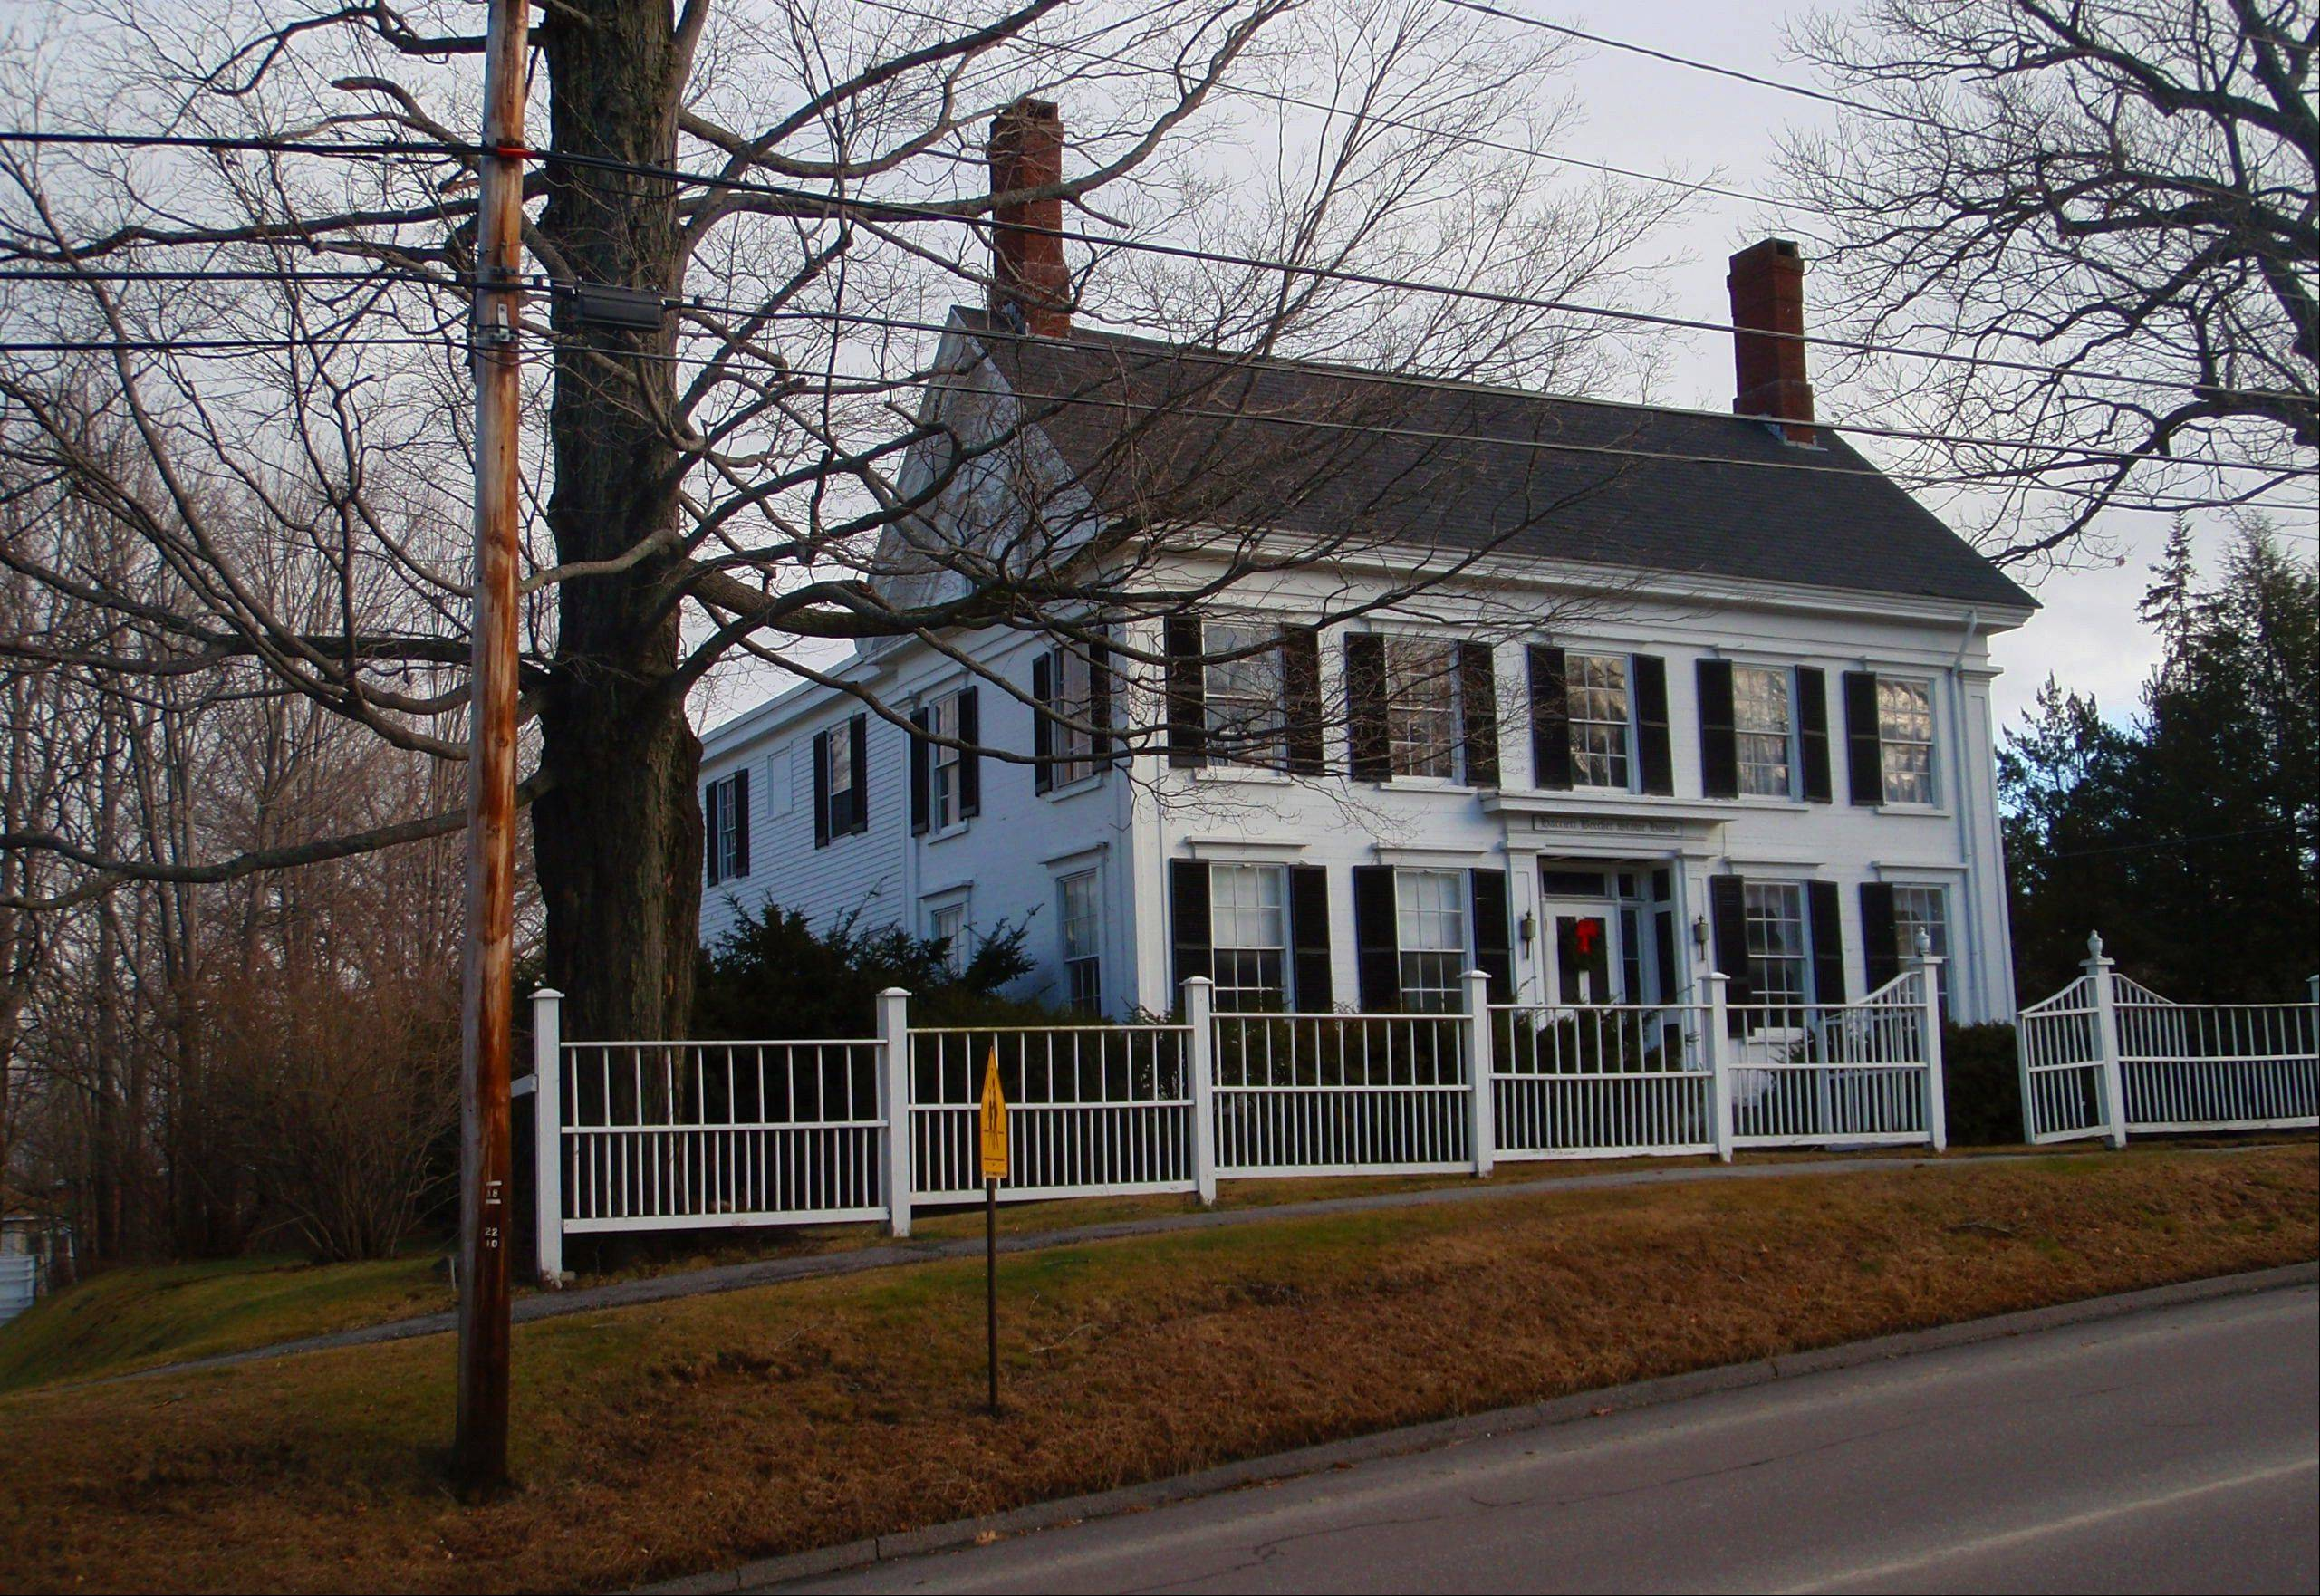 The house where Harriet Beecher Stowe lived in Brunswick, Maine, is a National Historic Landmark and one of many historic sites in Brunswick.